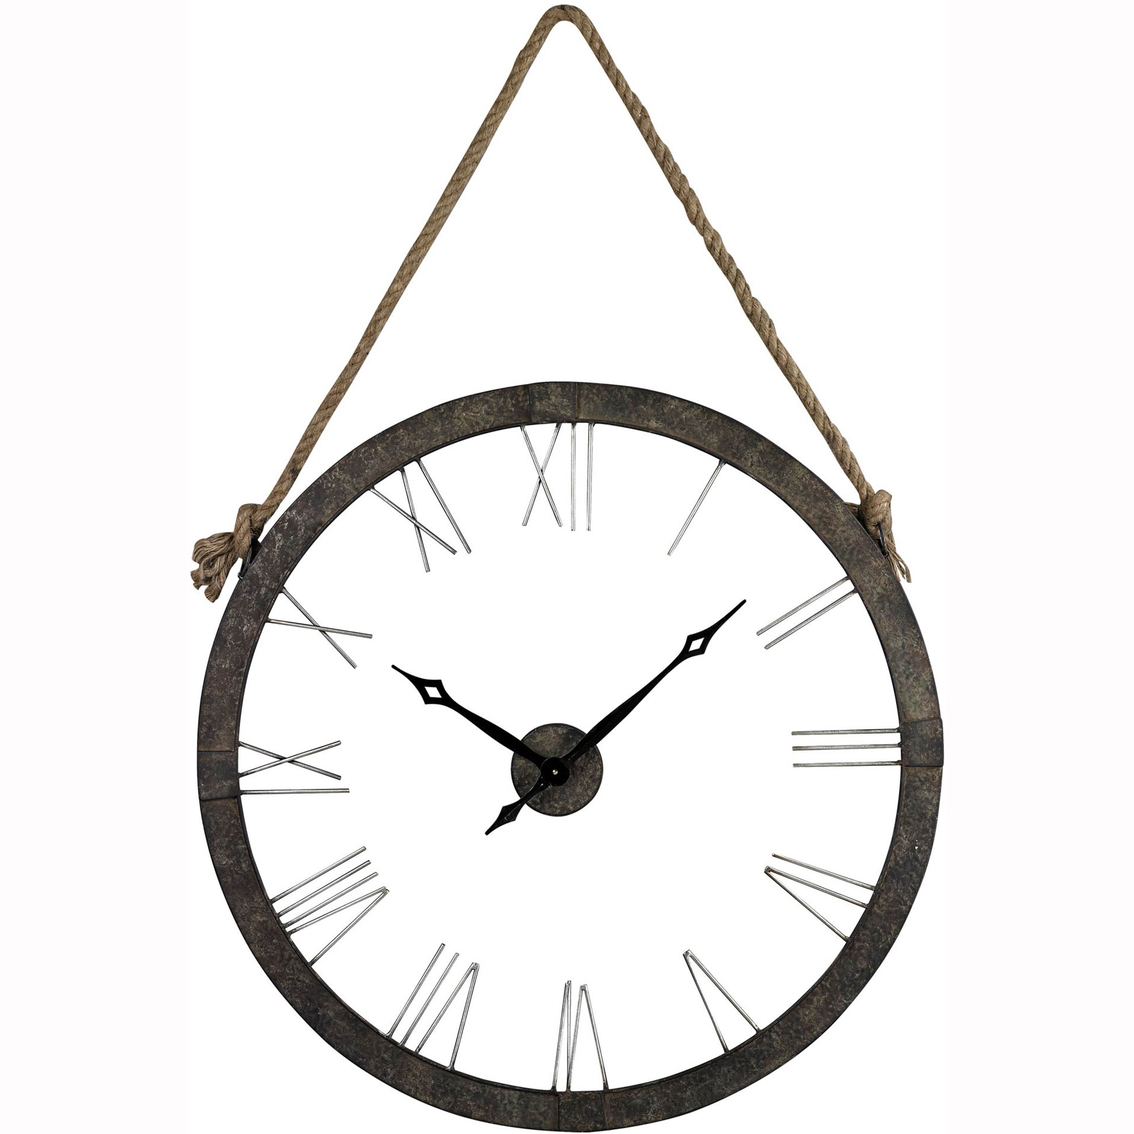 Elk lighting rustic iron wall clock with rope hanger clocks 4953 amipublicfo Image collections